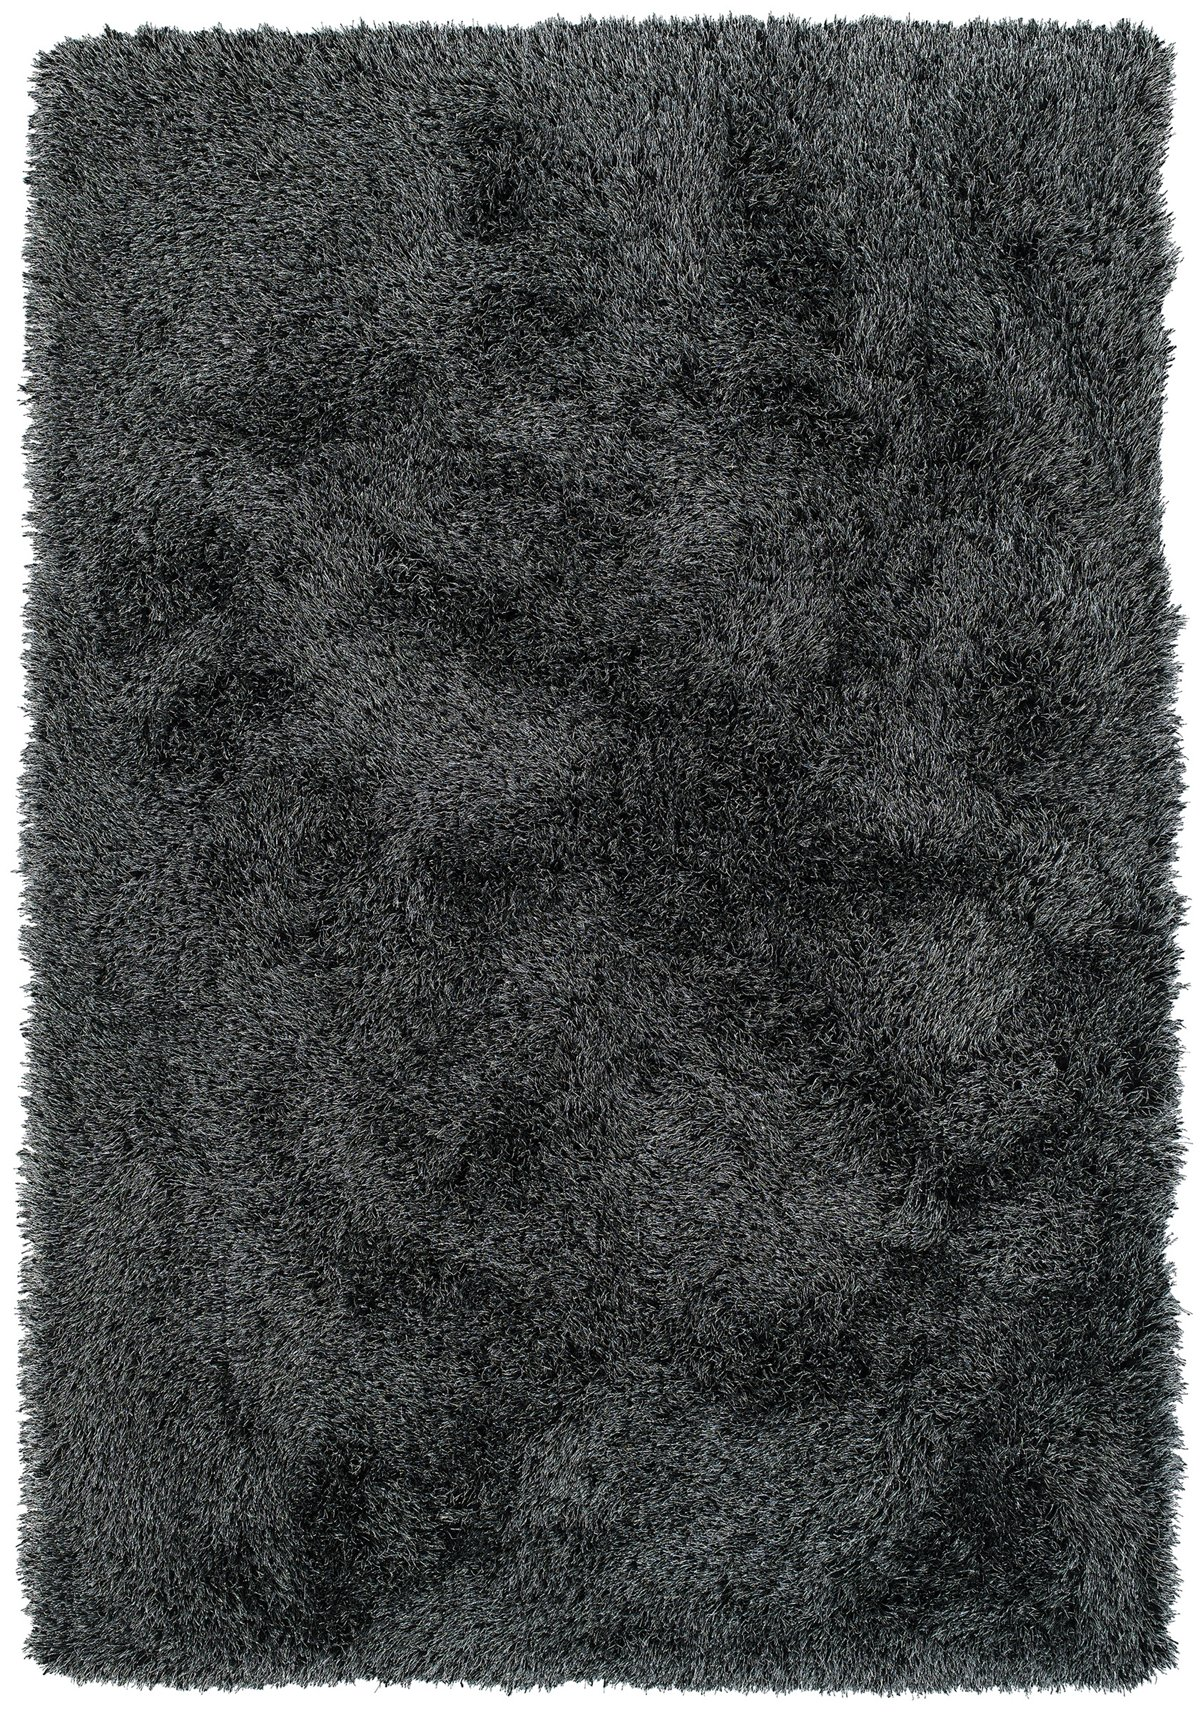 Impact Black Poly 8x10 Area Rug